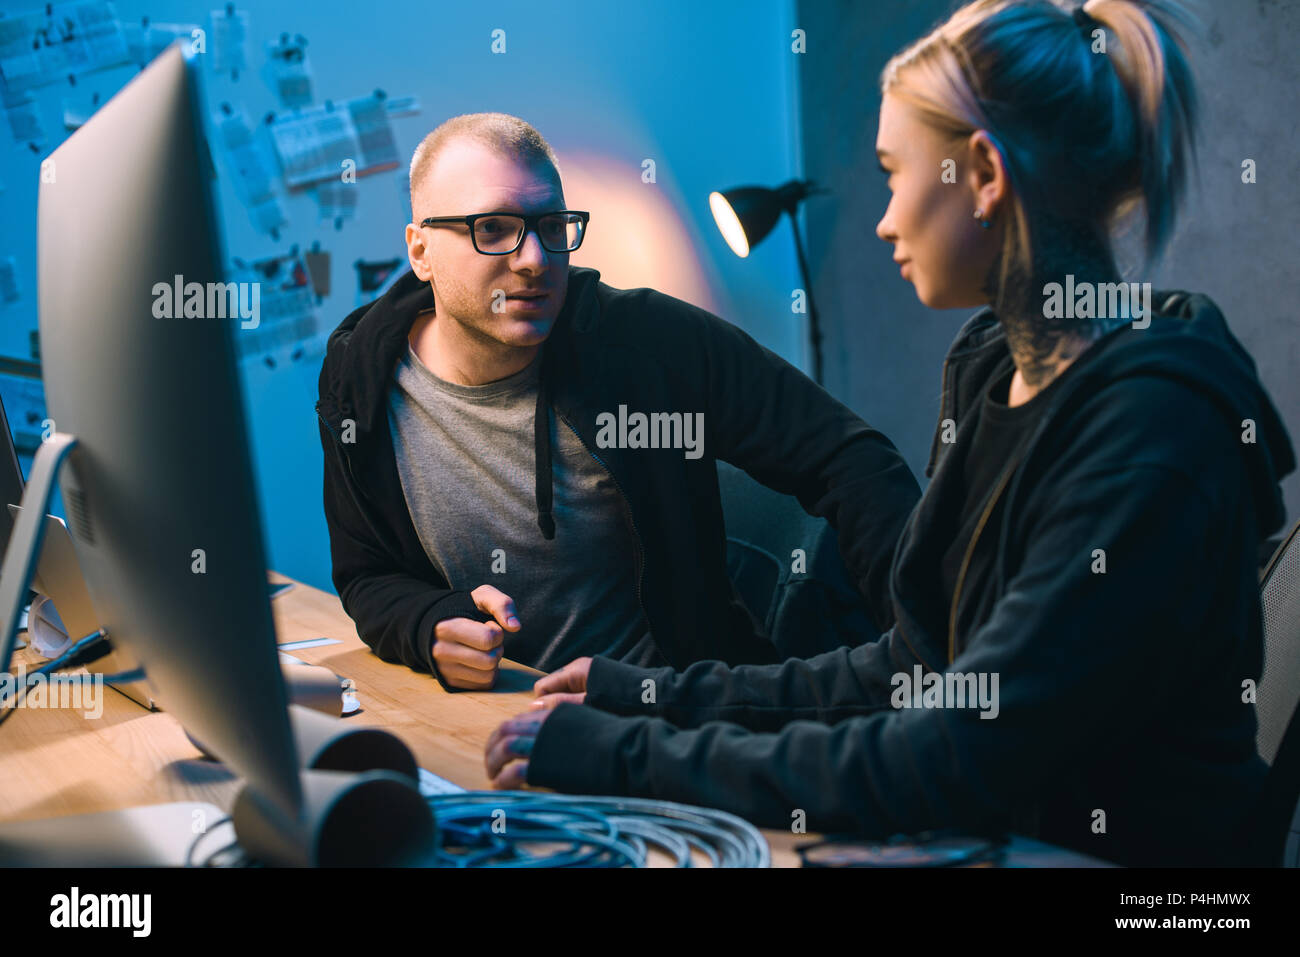 couple of hackers chatting at workplace in dark room - Stock Image